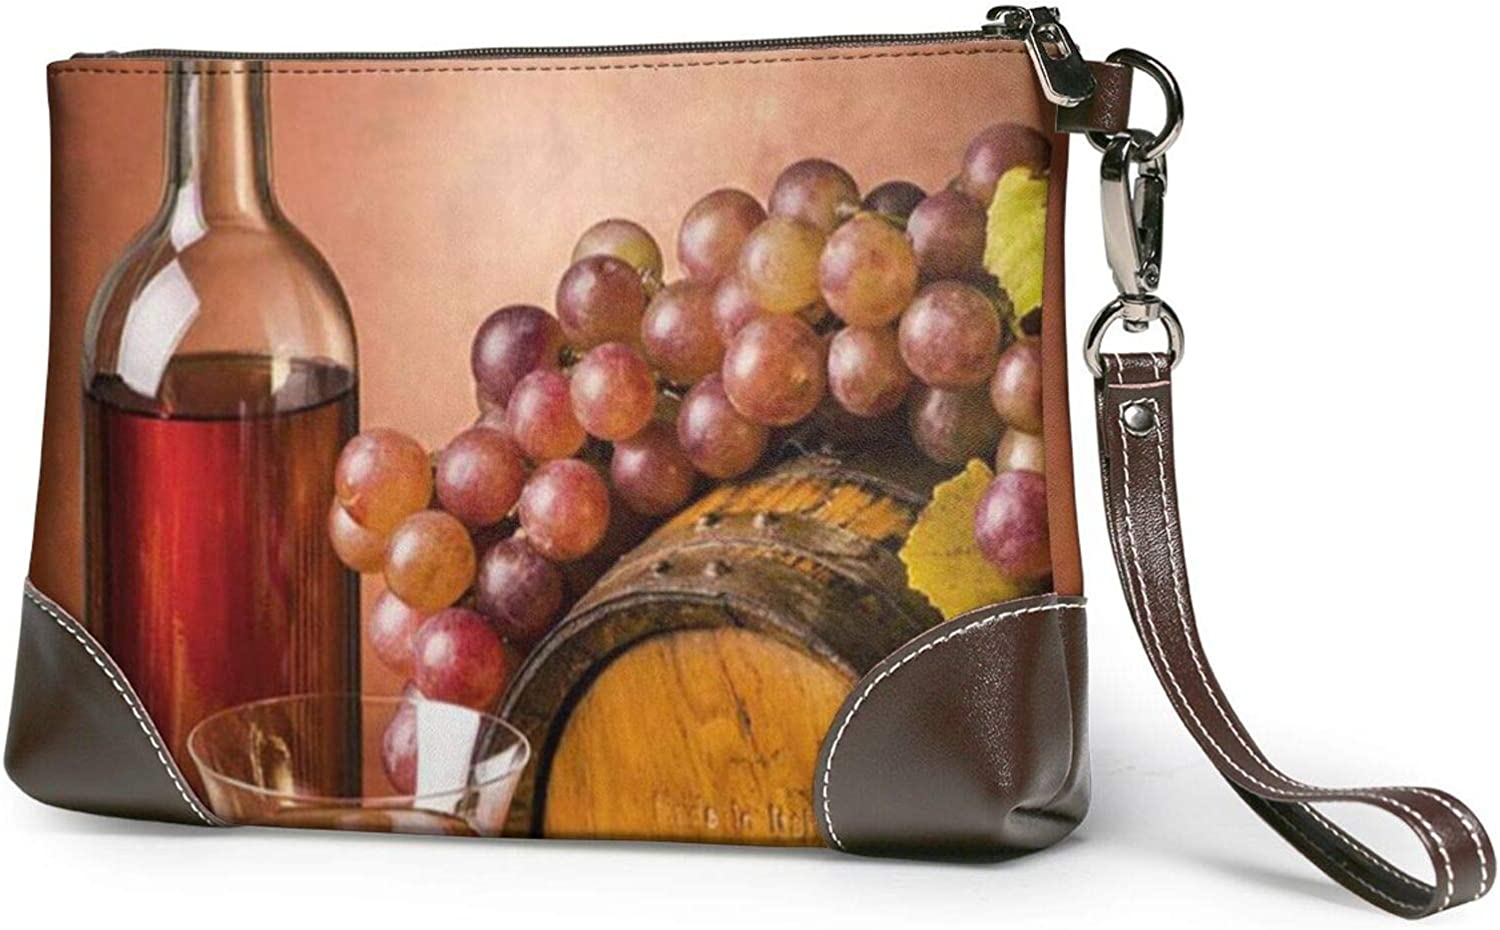 Food And Beverage Restaurant famous Clutch Leather Clut Easy-to-use Wristlet Purses